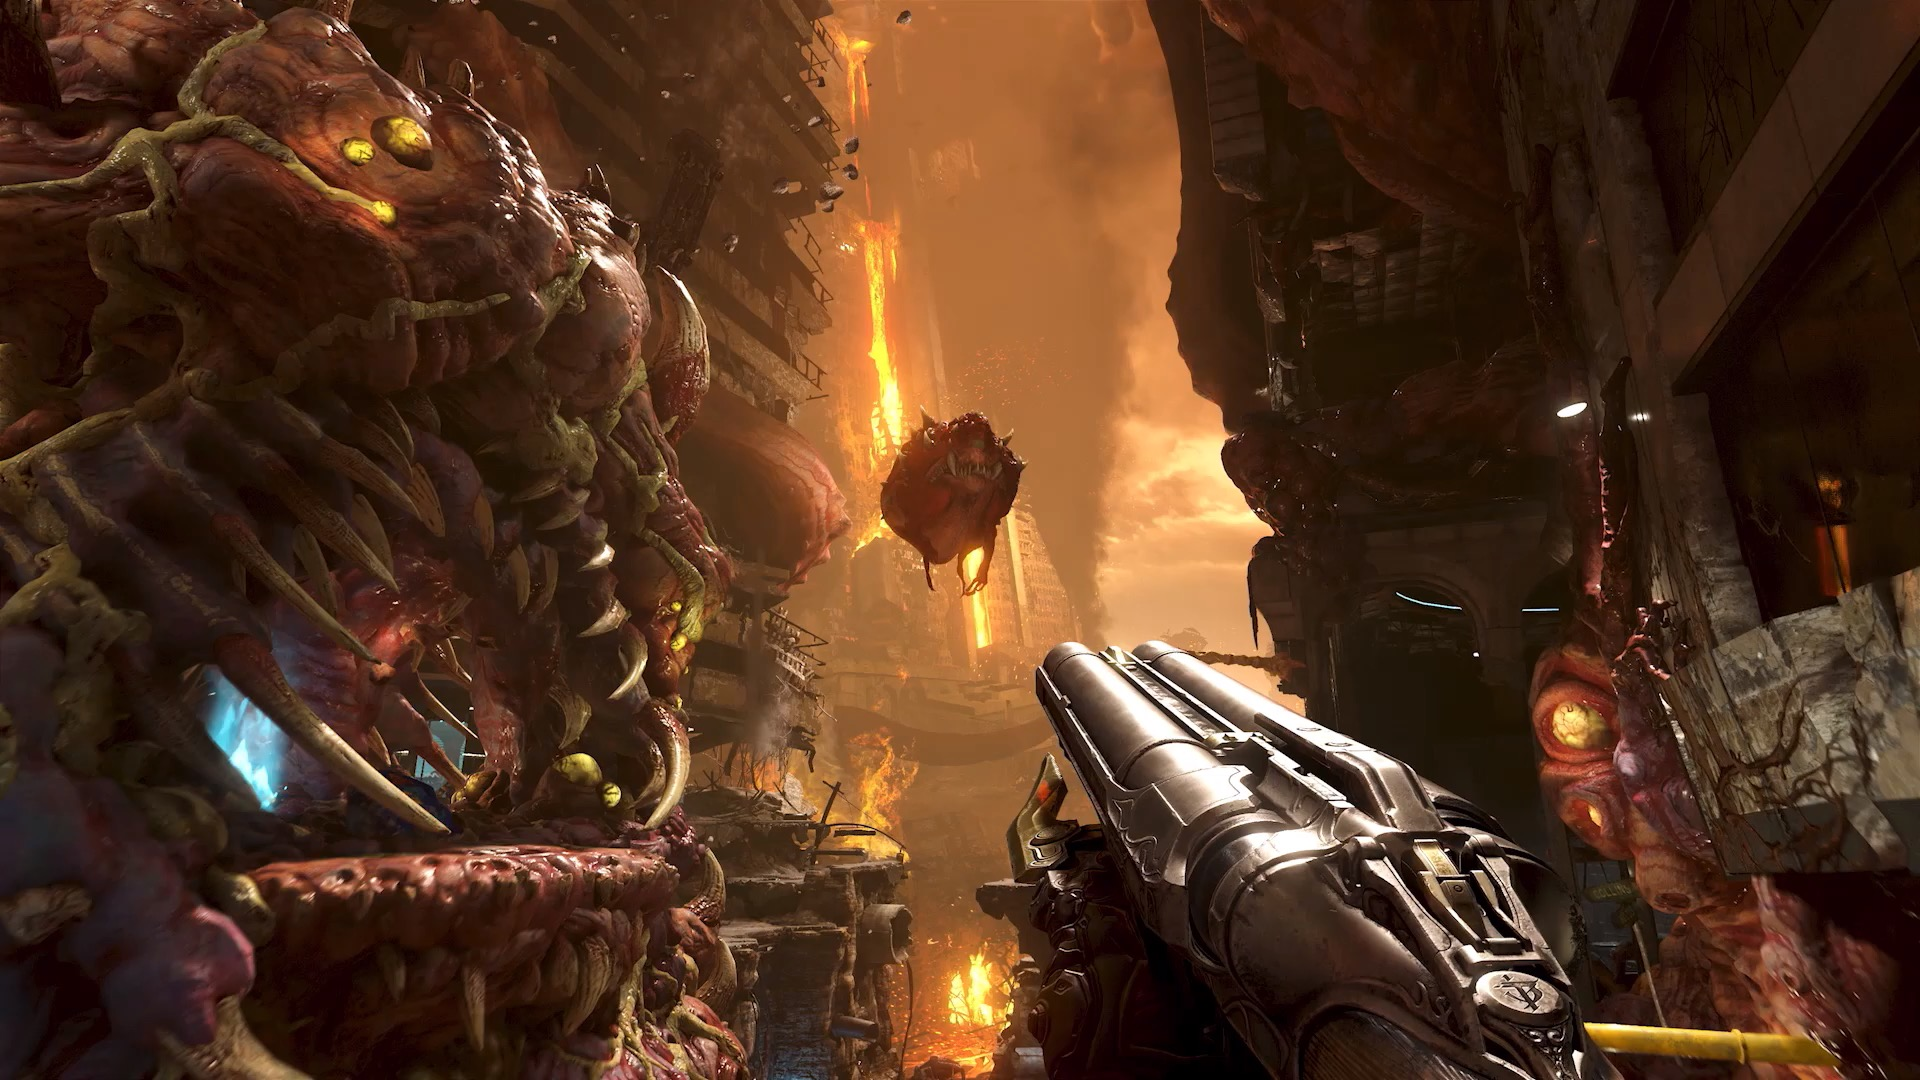 Doom Eternal looks like a bloody blast - and releases this